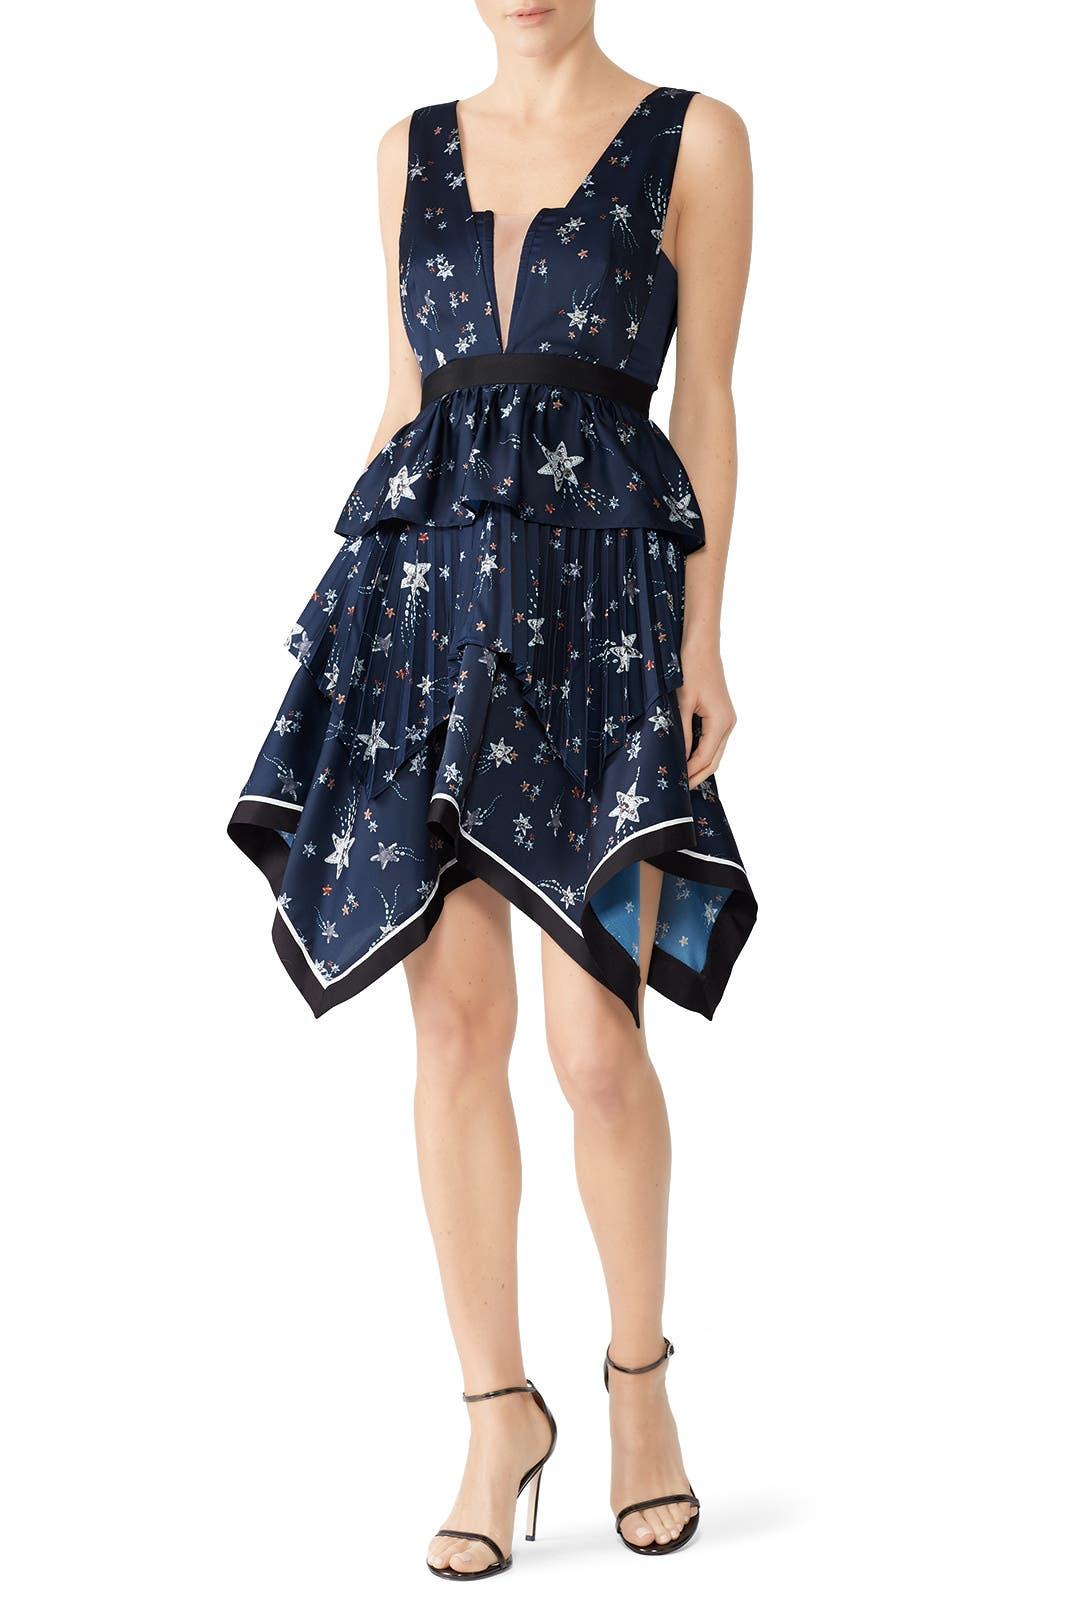 724f034a3a06 Star Handkerchief Dress by Self-portrait for $60 - $70 | Rent the Runway